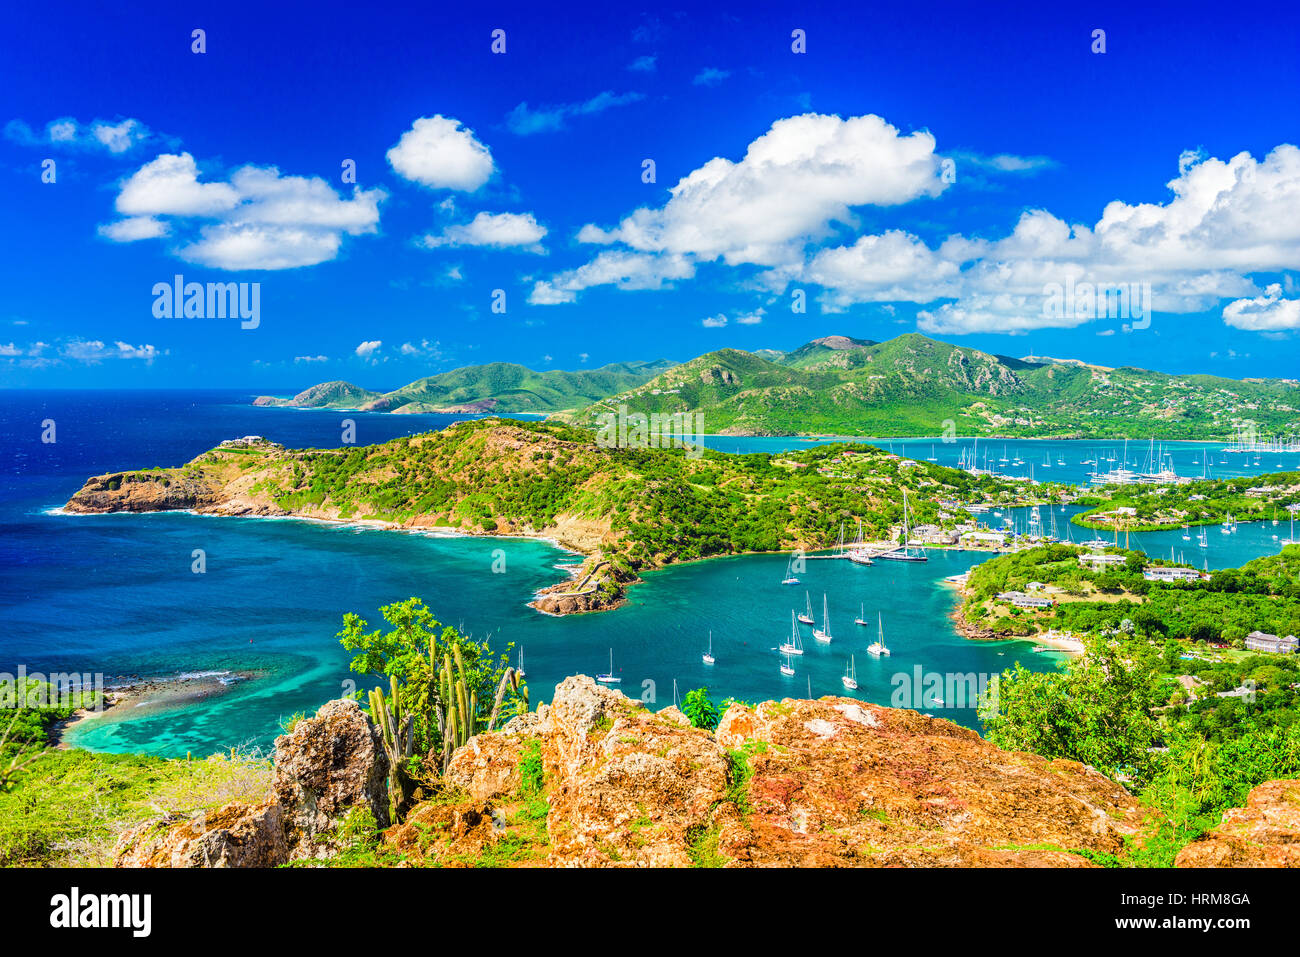 Shirley Heights, Antigua view. - Stock Image